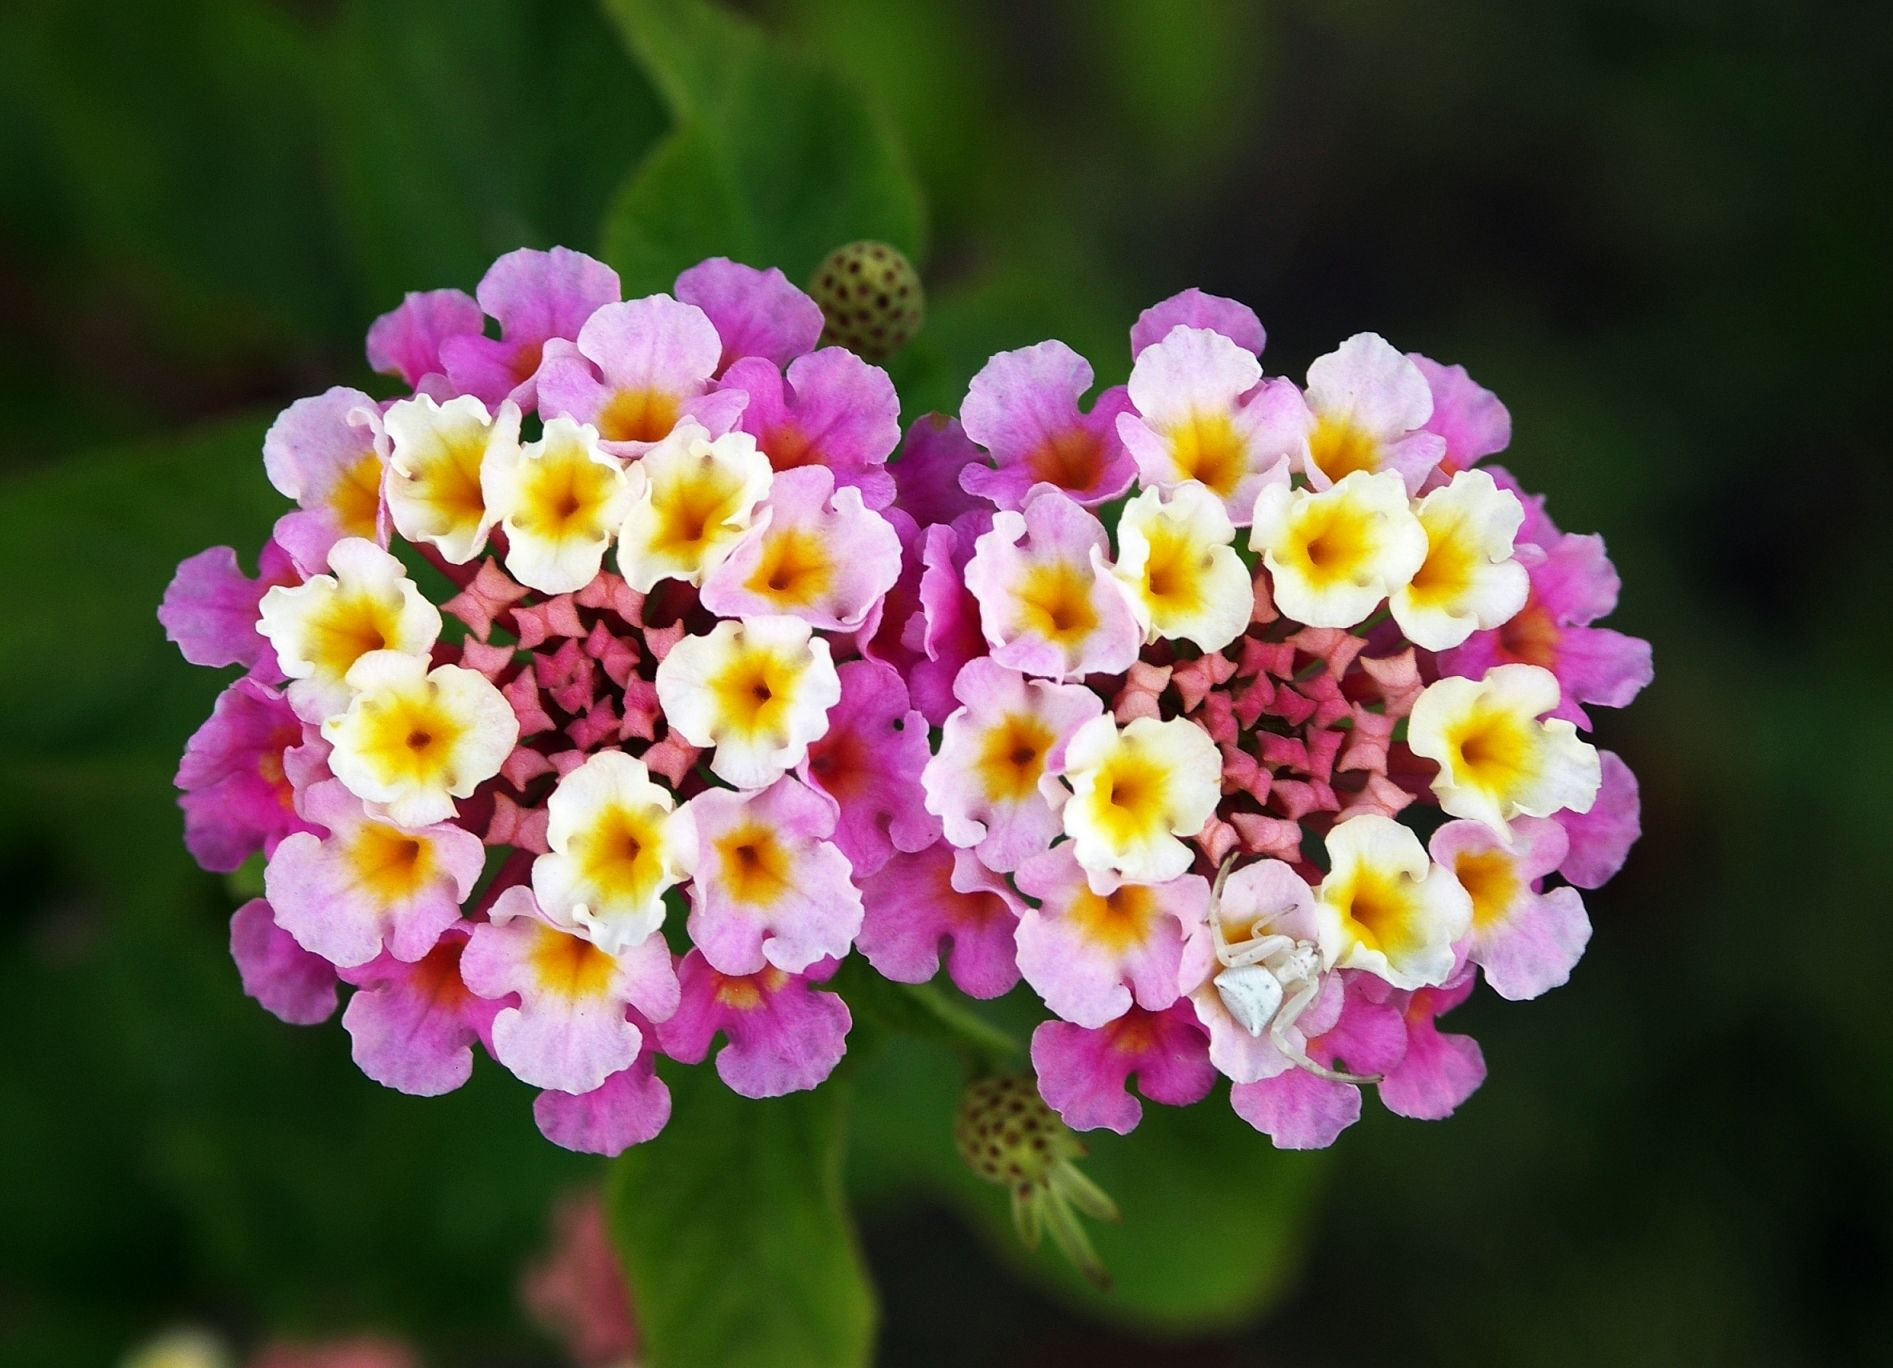 Bestflowersintheworld top 10 most beautiful flowers in the bestflowersintheworld top 10 most beautiful flowers in the world lantana izmirmasajfo